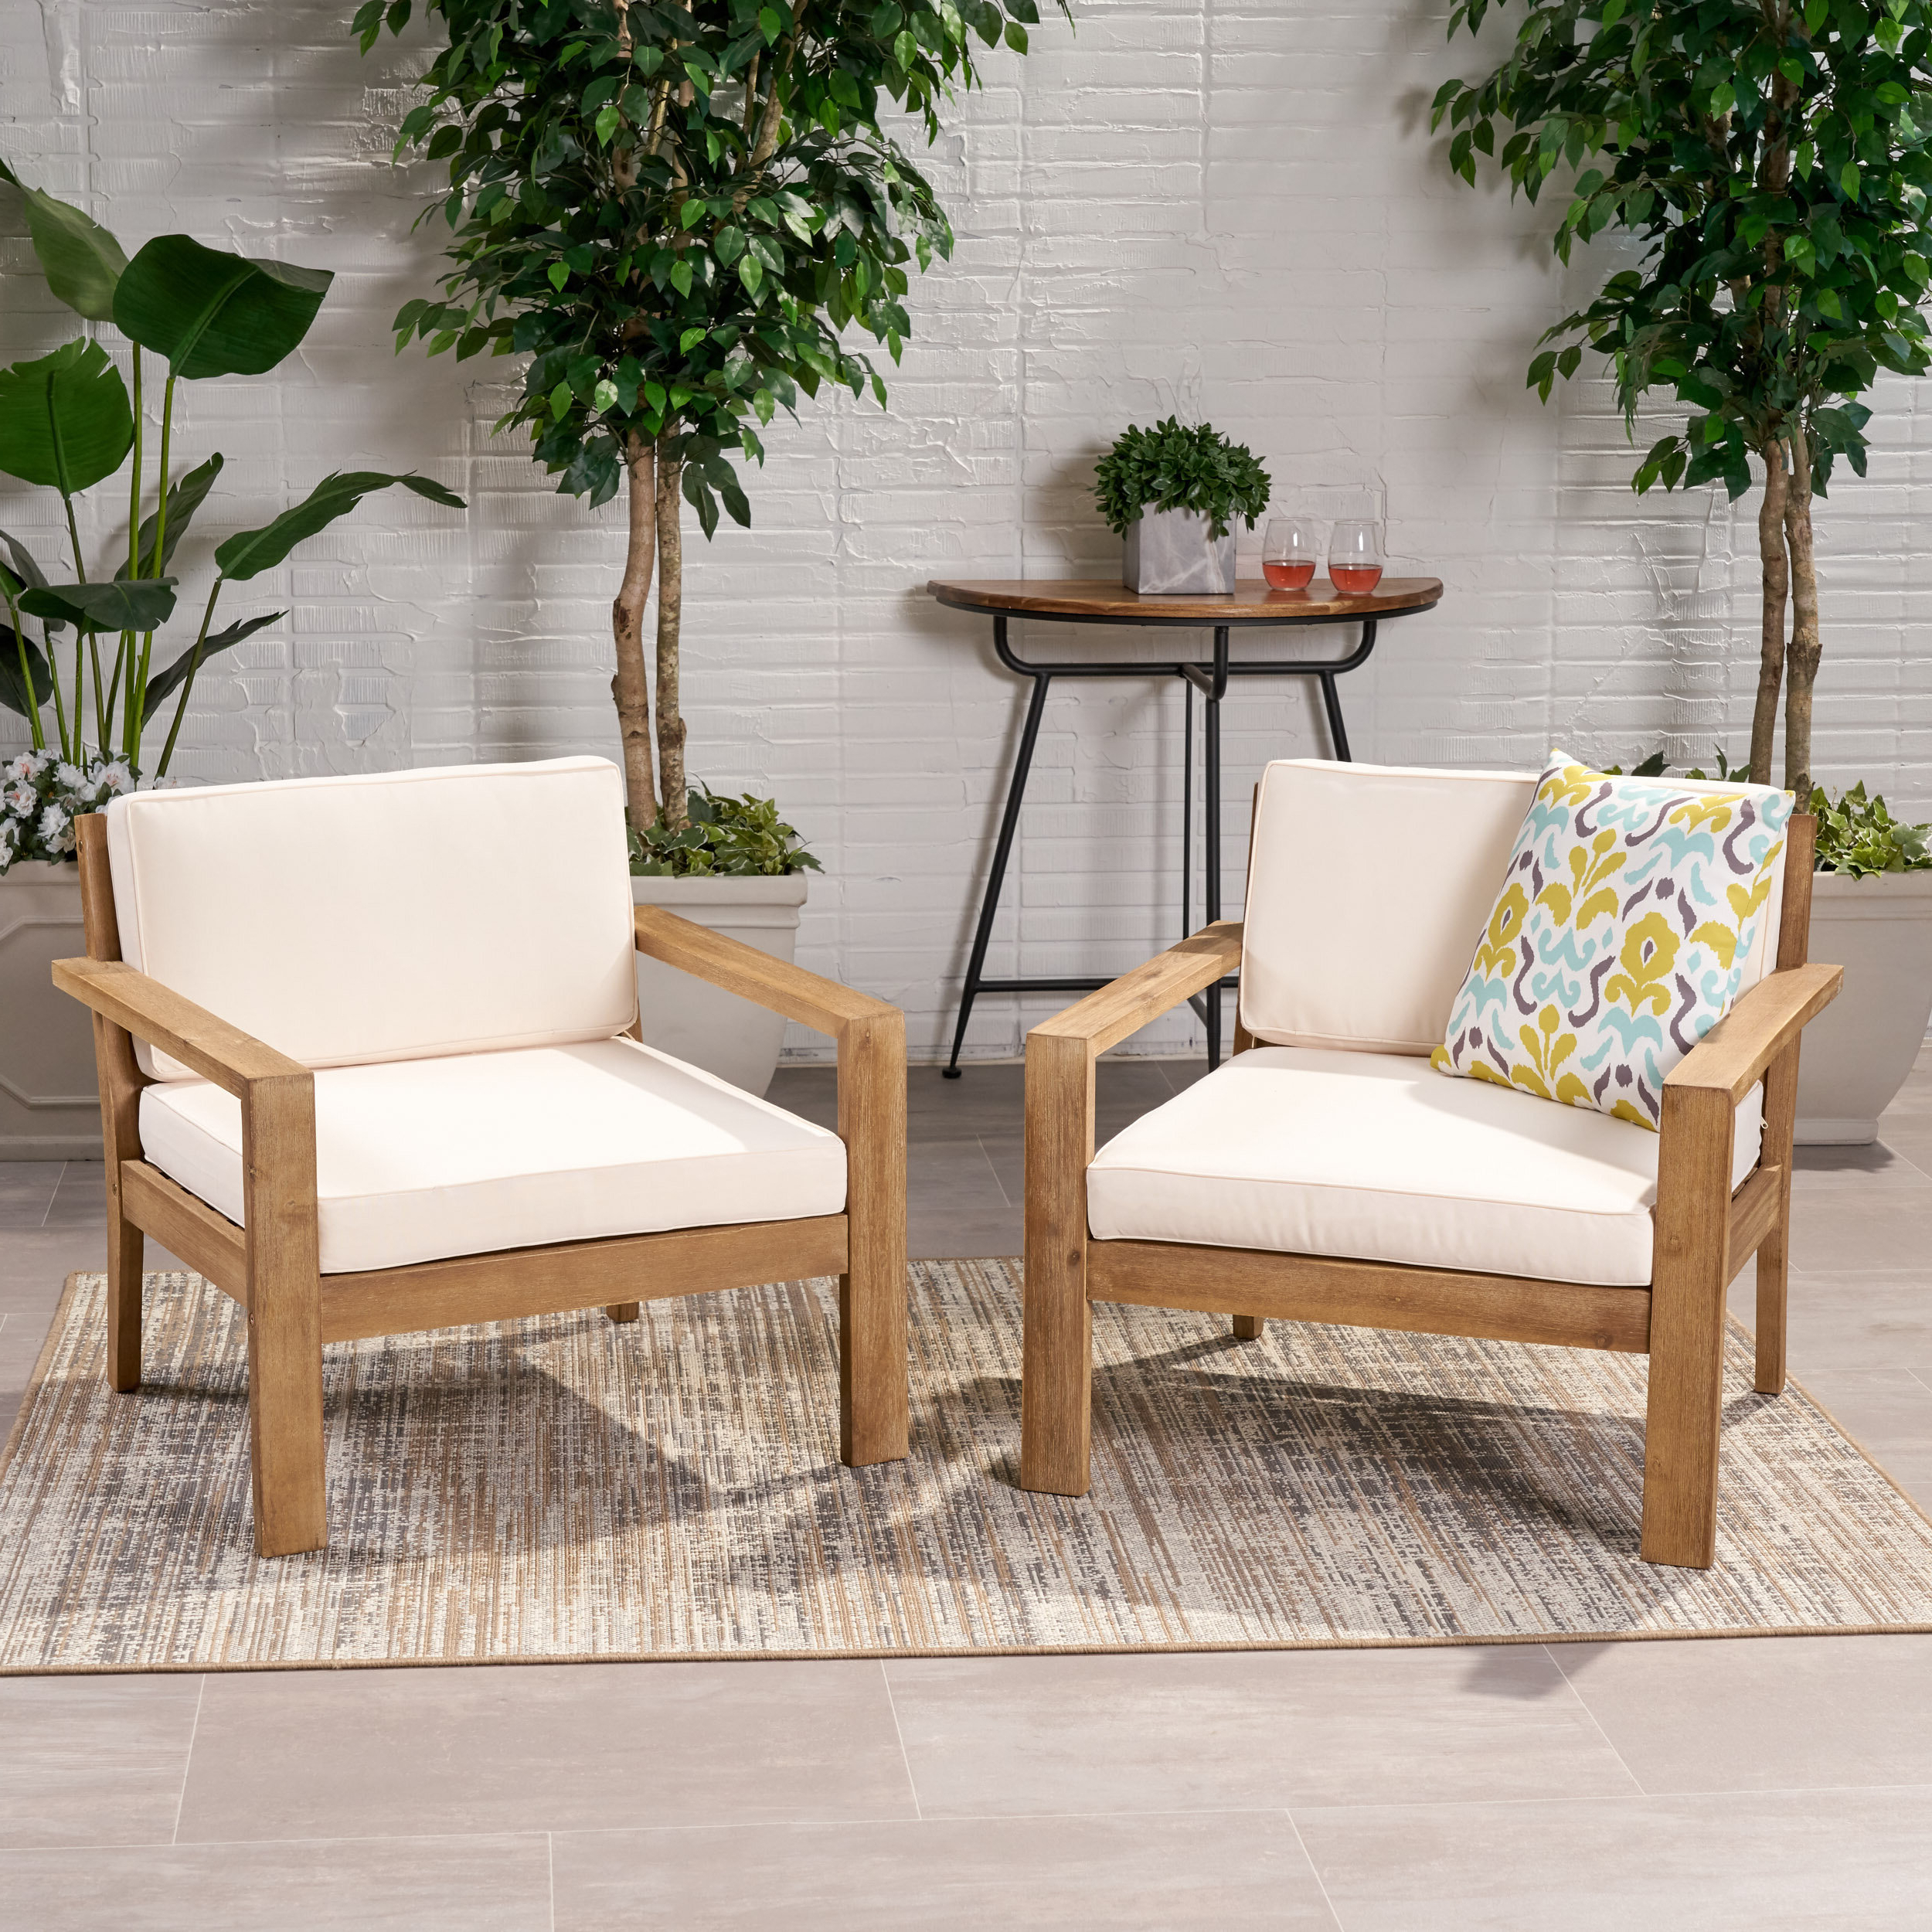 Seaham Patio Sectionals With Cushions In 2020 Brayden Studio Seaham Patio Sectional With Cushions (View 12 of 20)